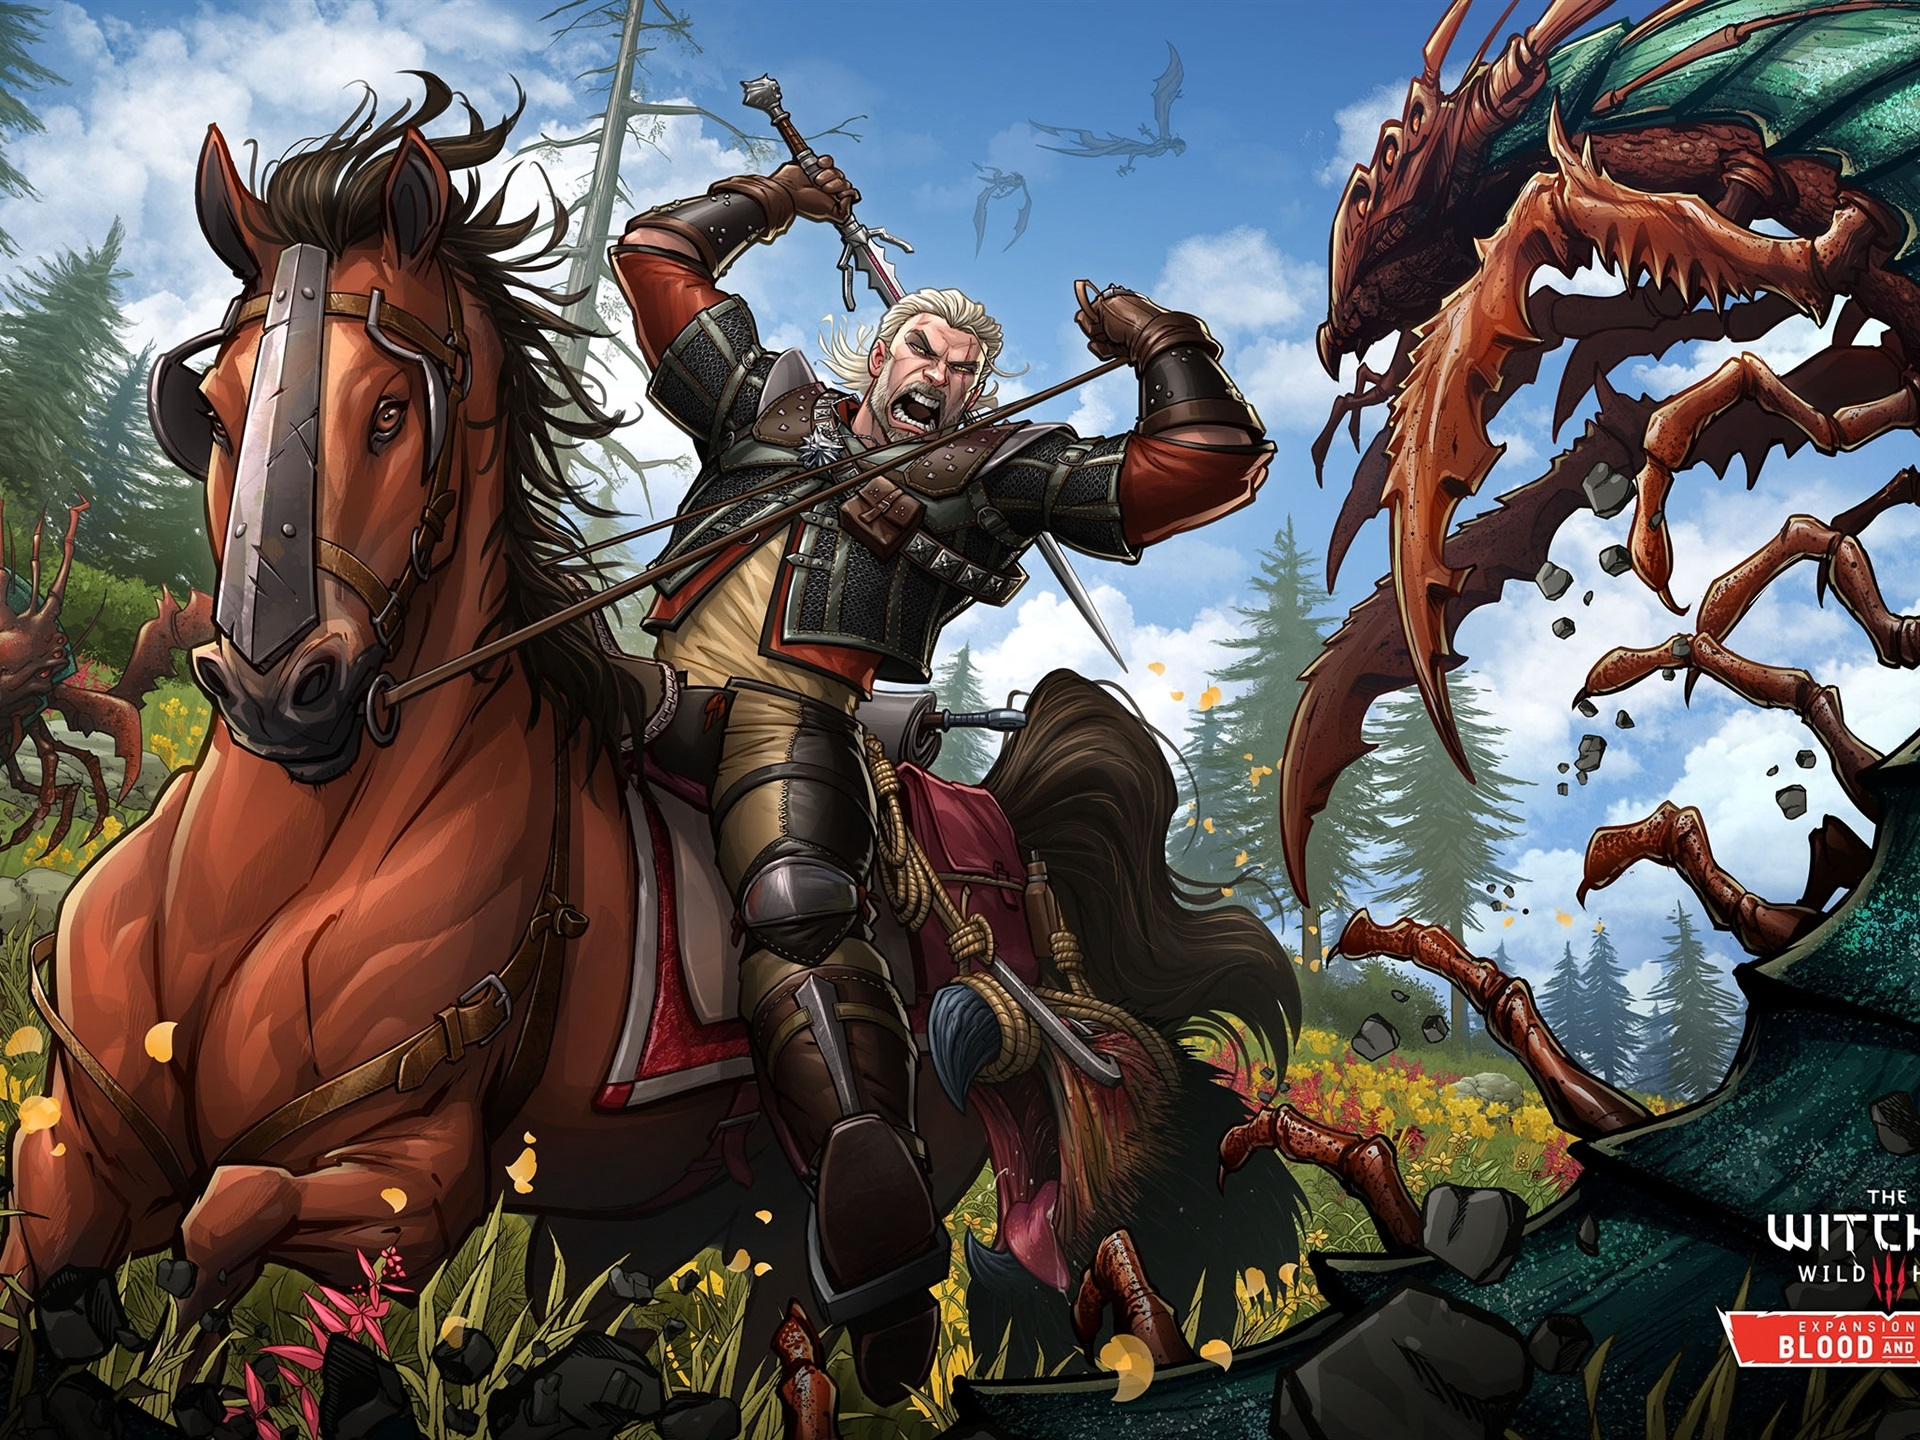 Wallpaper The Witcher 3 Wild Hunt Blood And Wine Game Art